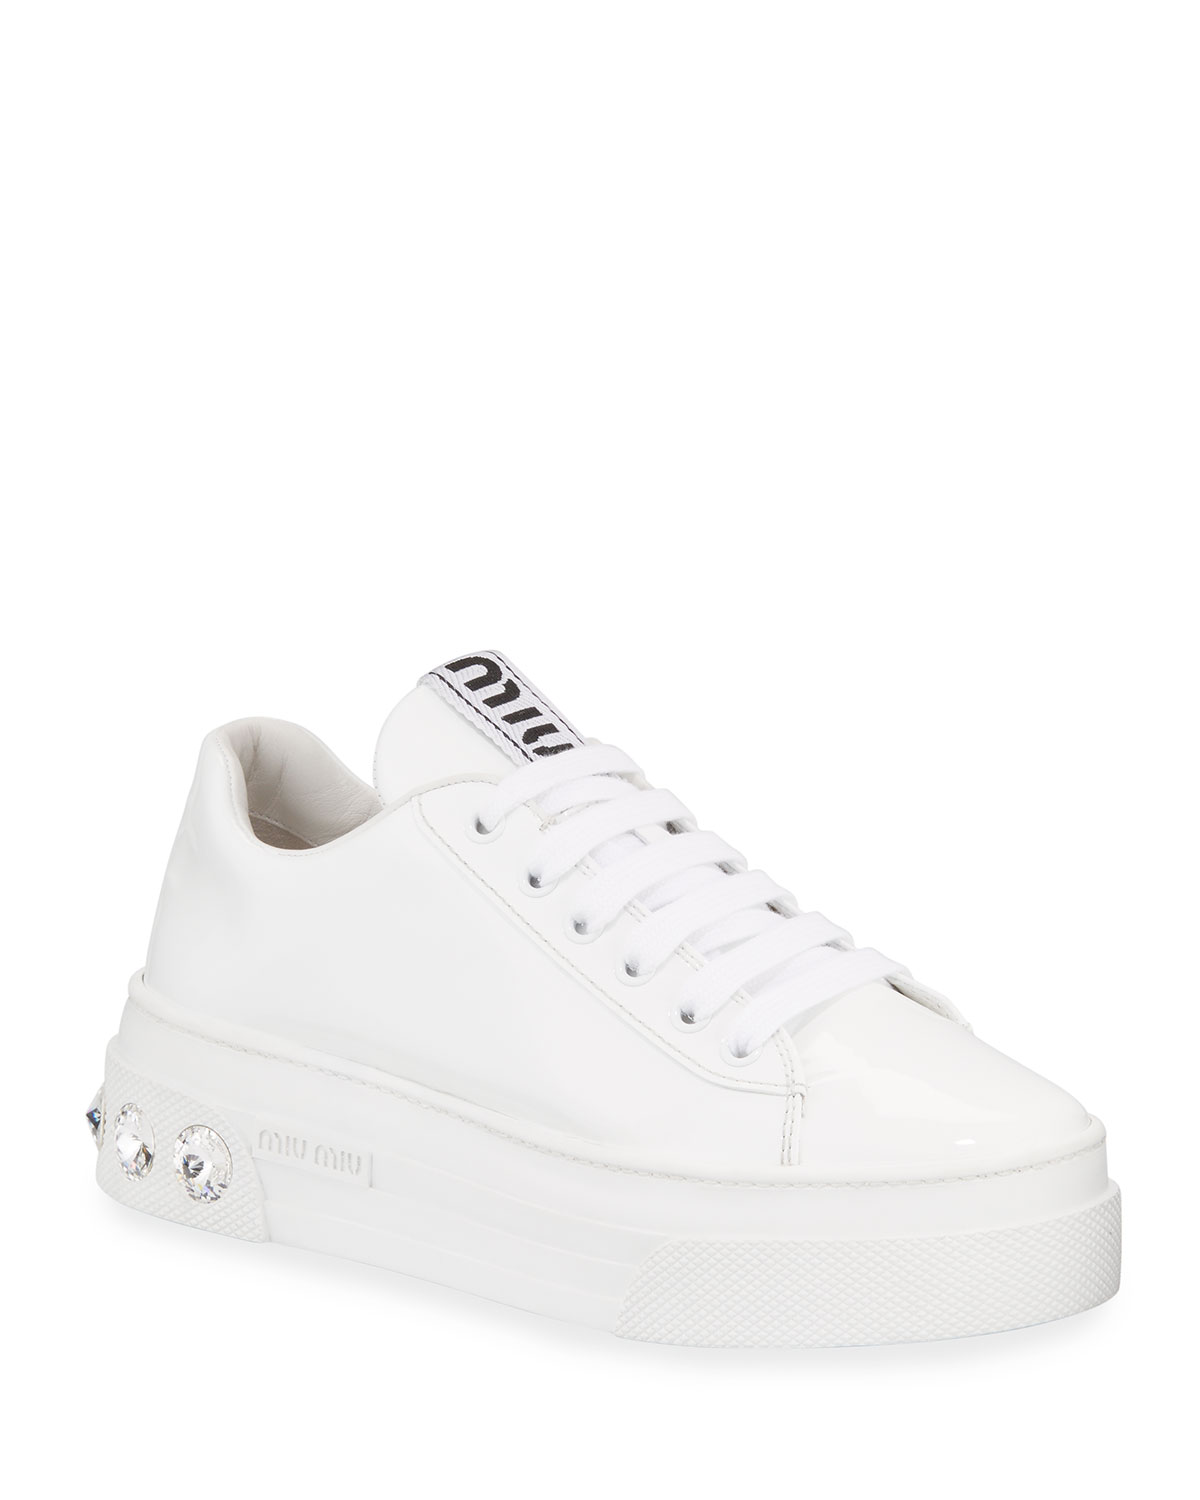 Patent Leather Sneakers With Crystal Heel by Miu Miu